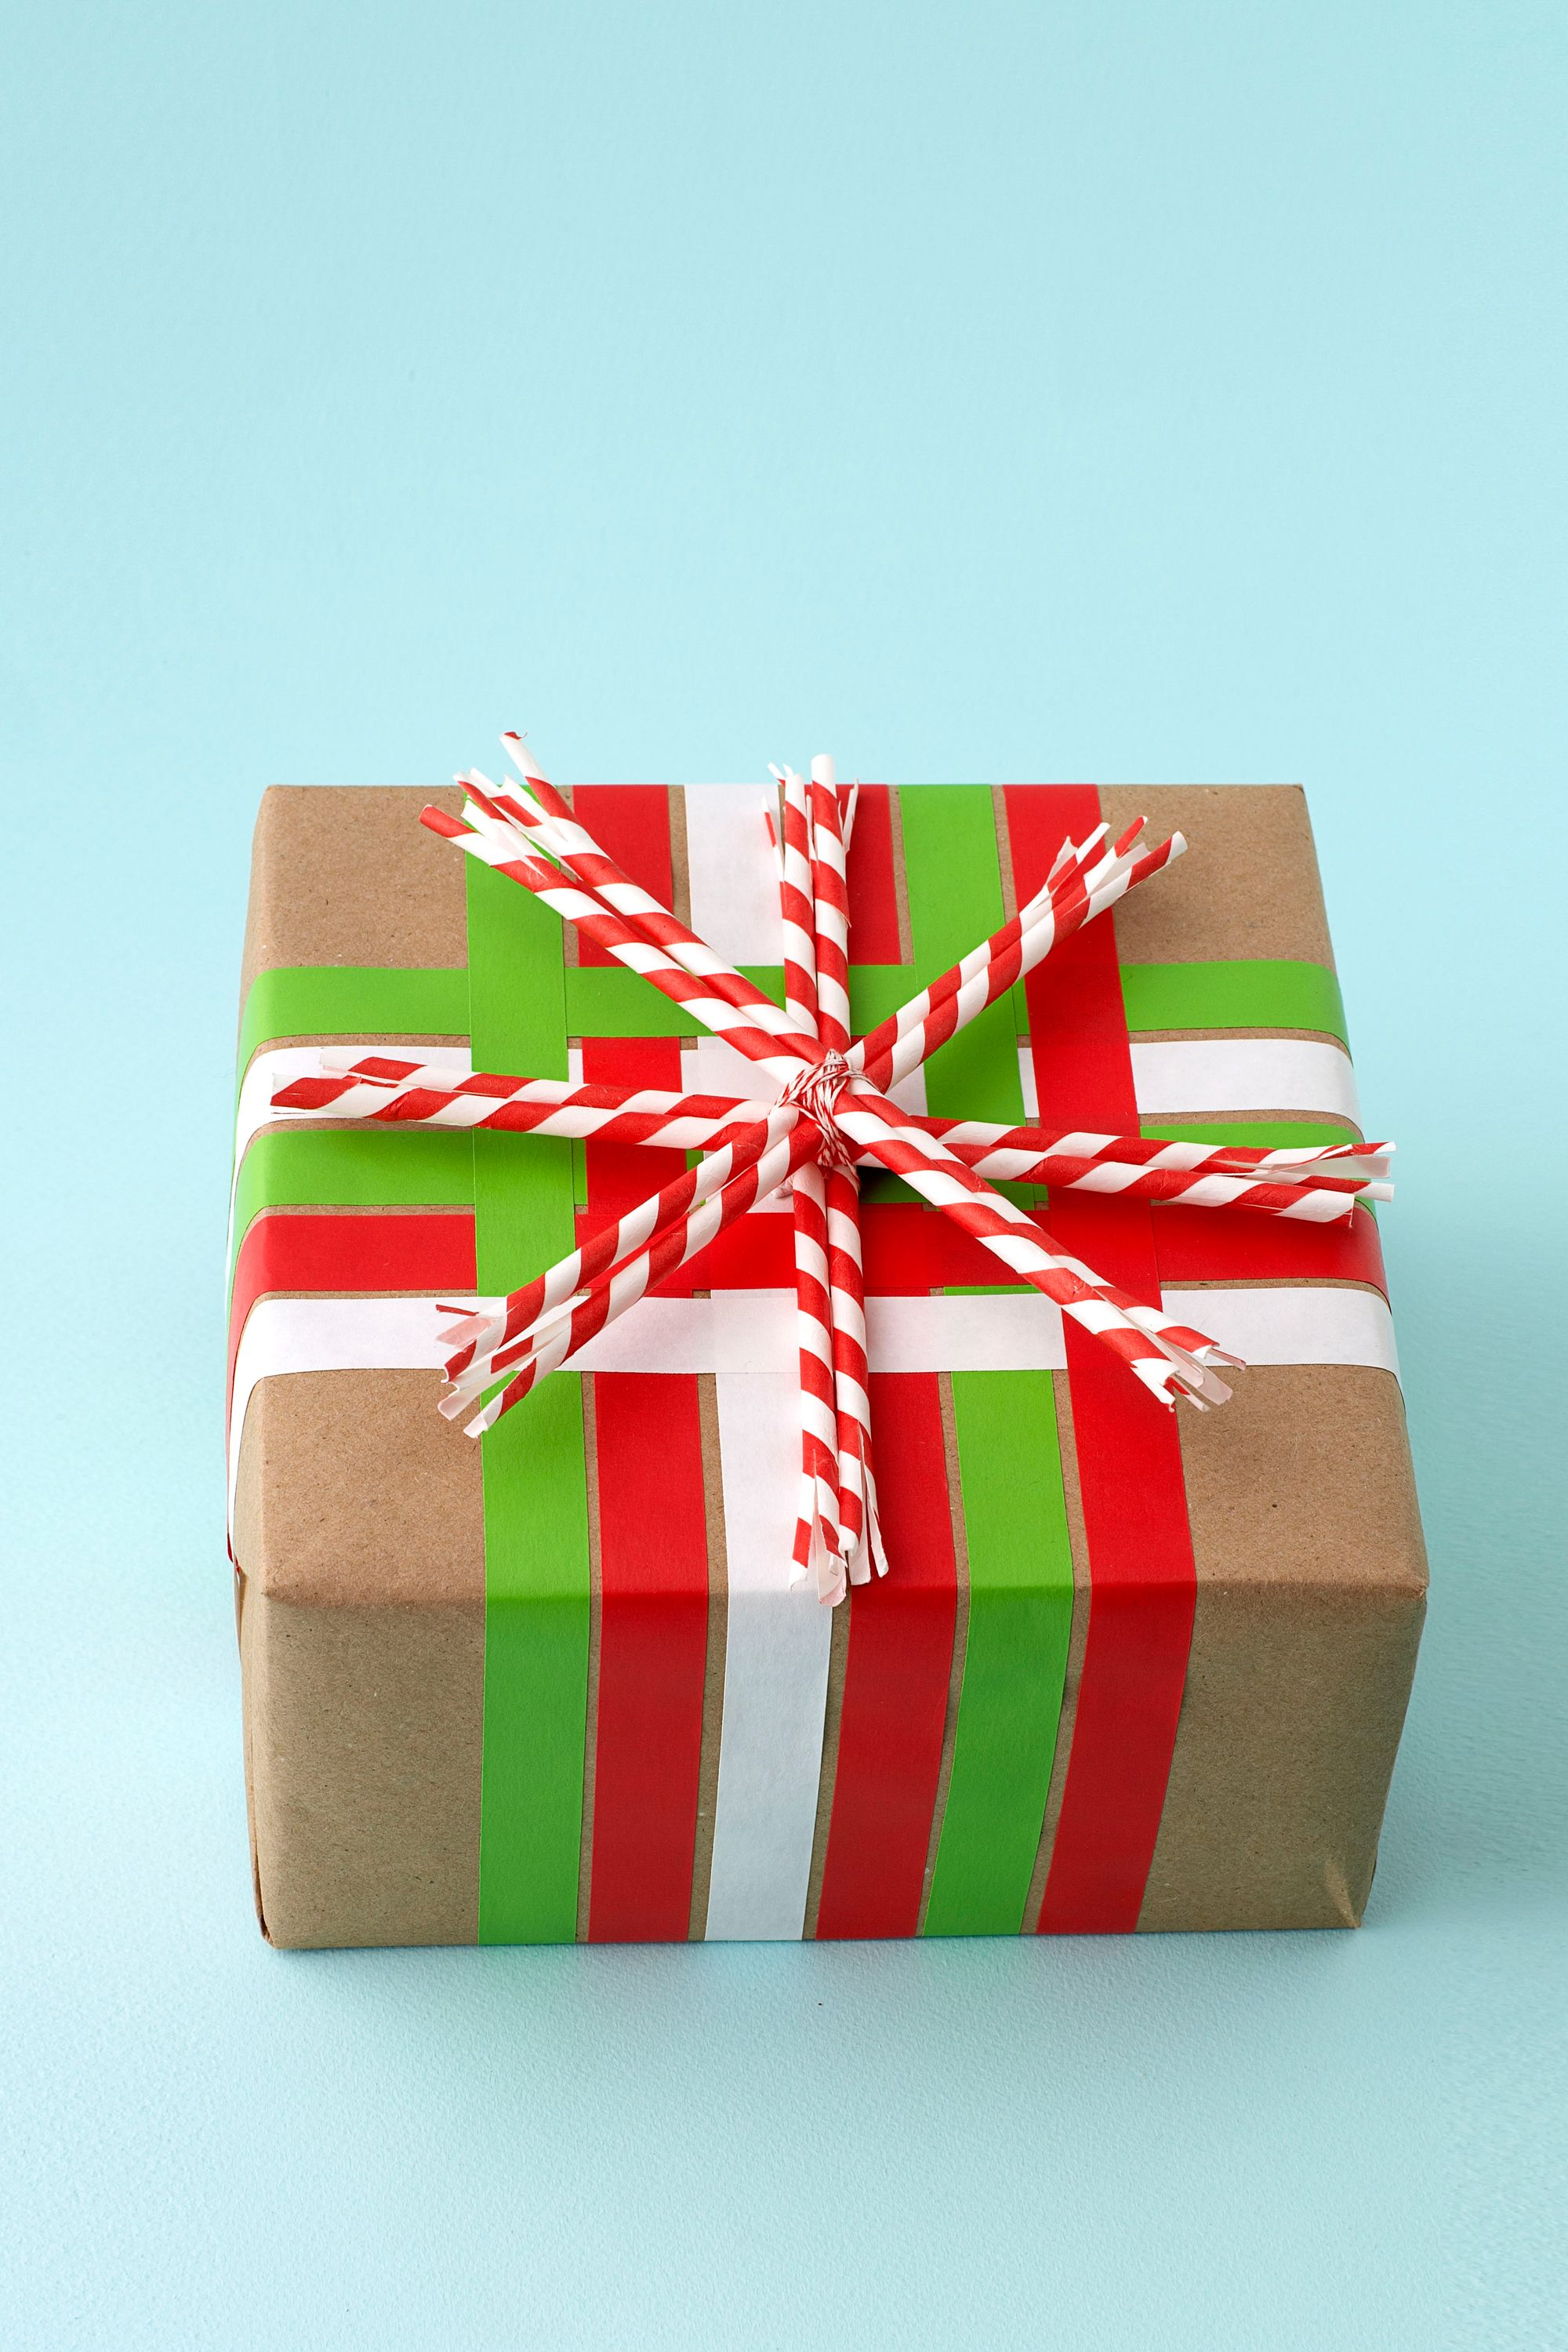 gift-wrapping ideas tape art & 39 Unique Gift Wrapping Ideas for Christmas - How to Wrap Holiday ...